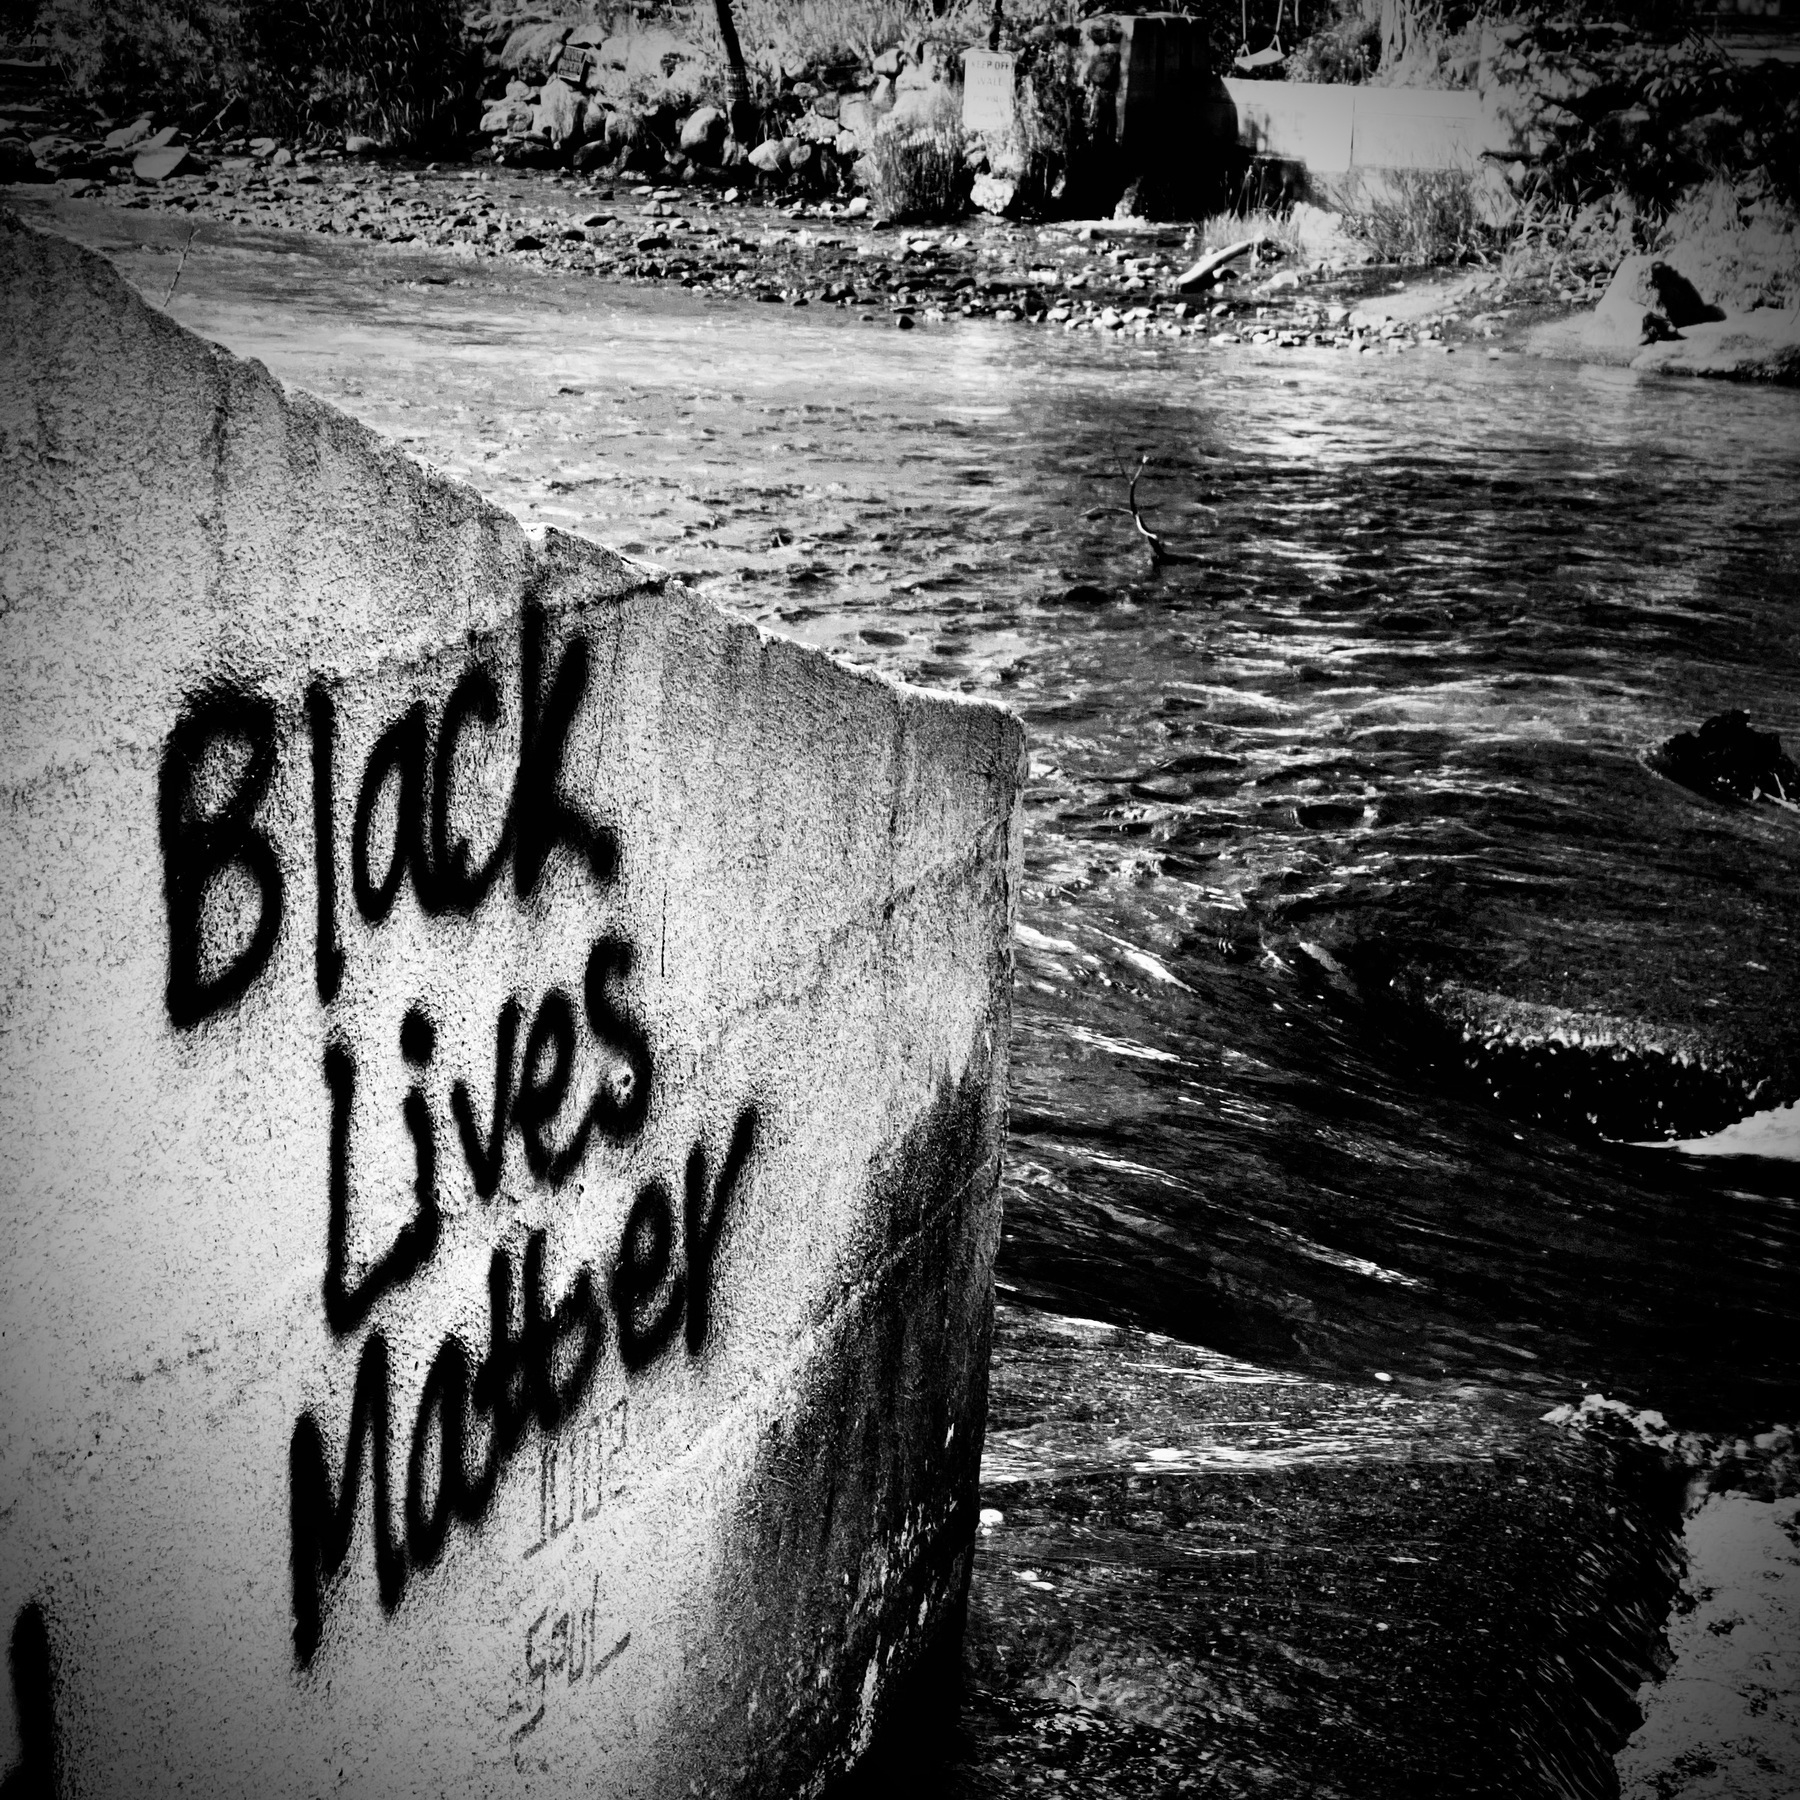 Black Lives Matter spray painted on wall beside a creek